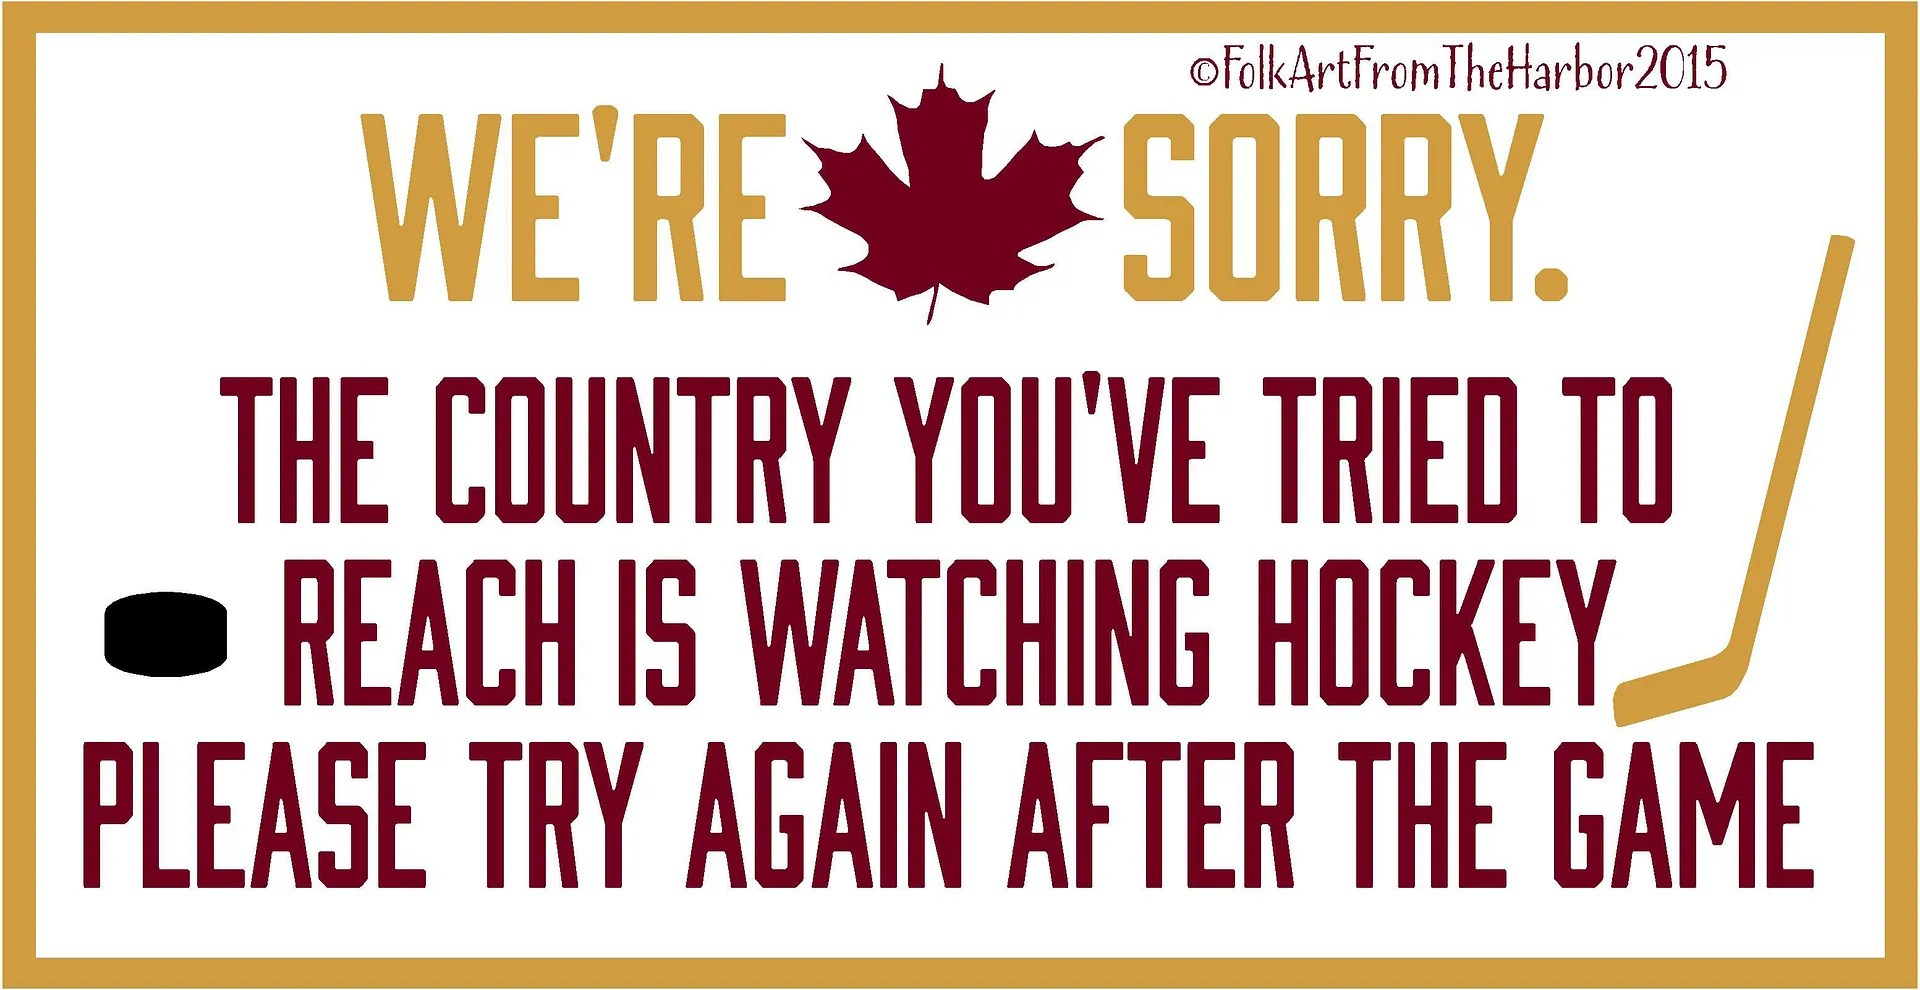 Image result for we're sorry the country you are trying to reach is watching hockey